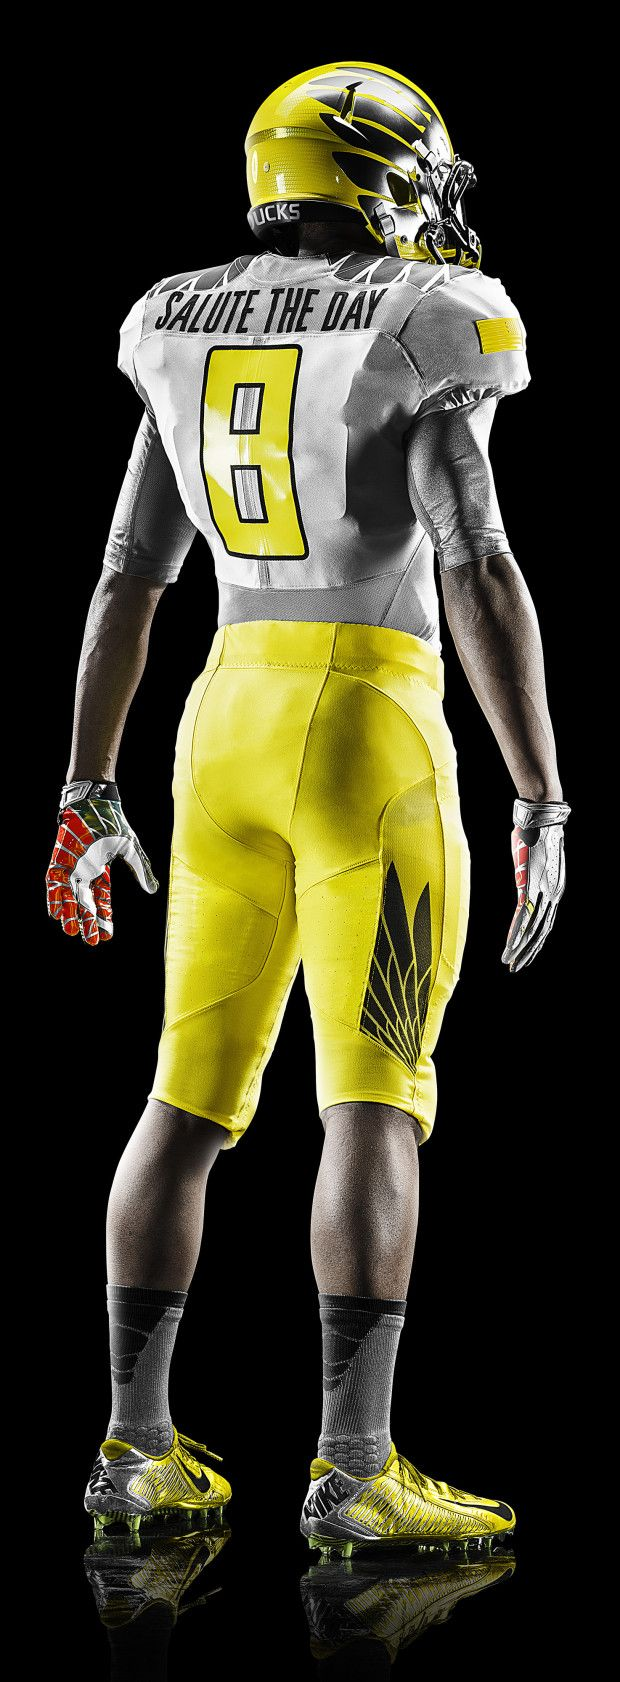 2014 Oregon Spring Football Uniform - Away Team Yellow Strike Design